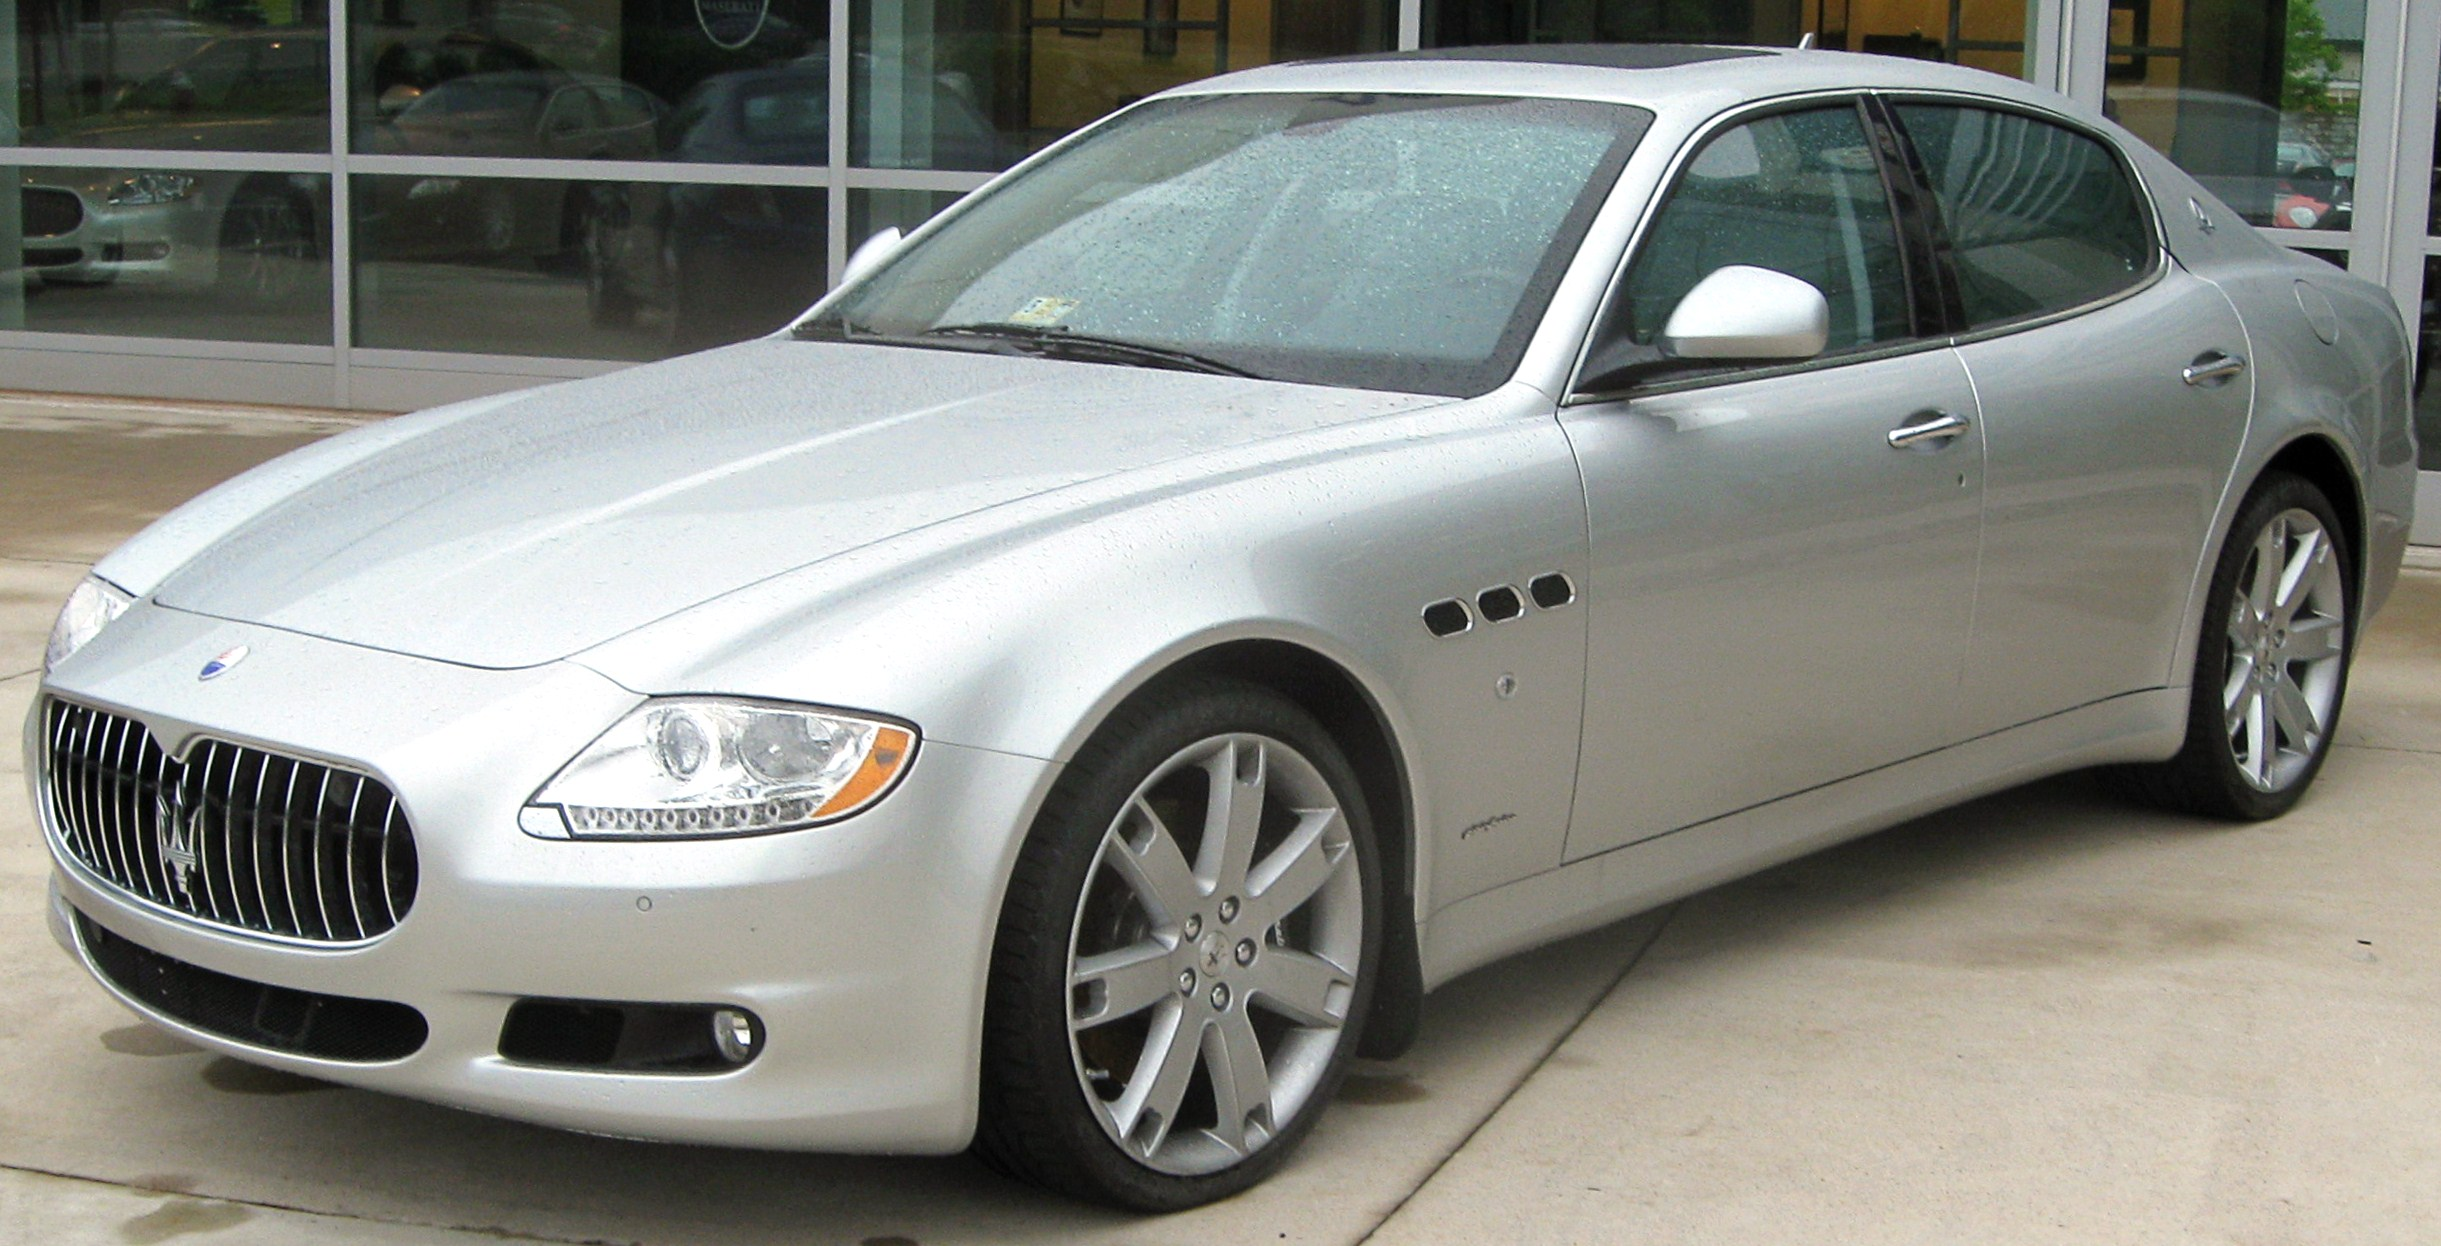 Maserati Quattroporte I photo 16